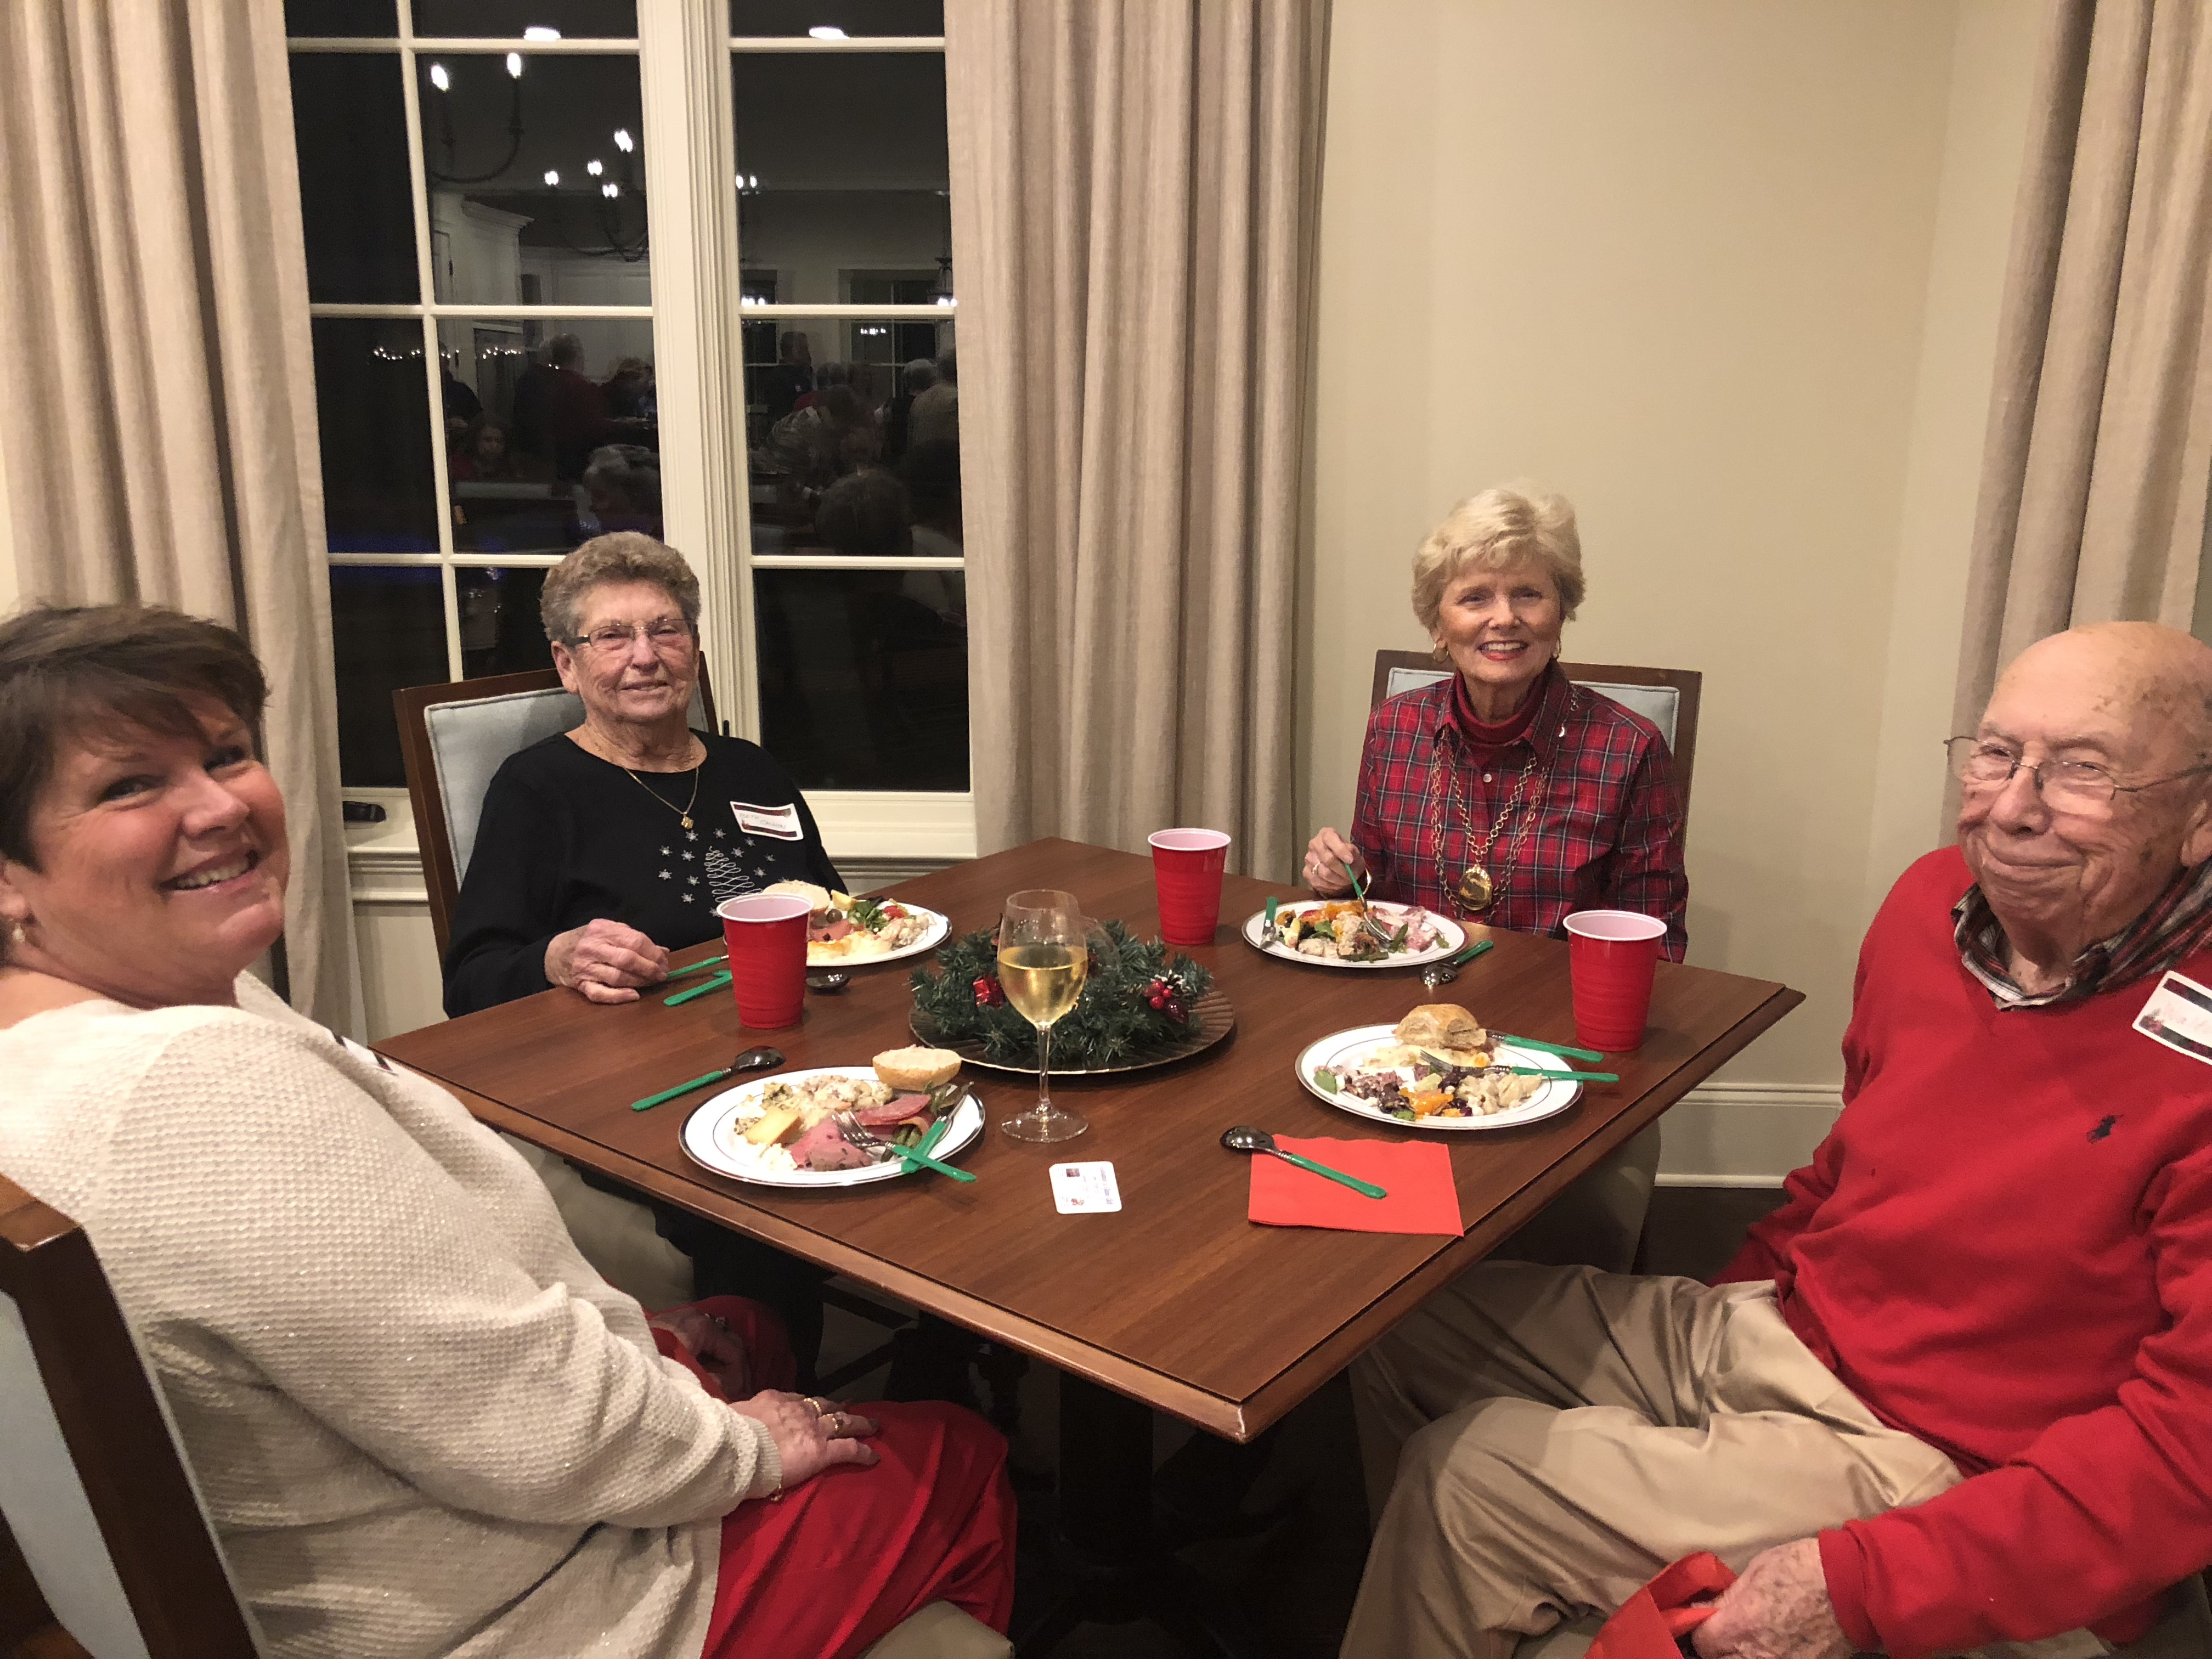 christmas party for active adults in auburn opelika al